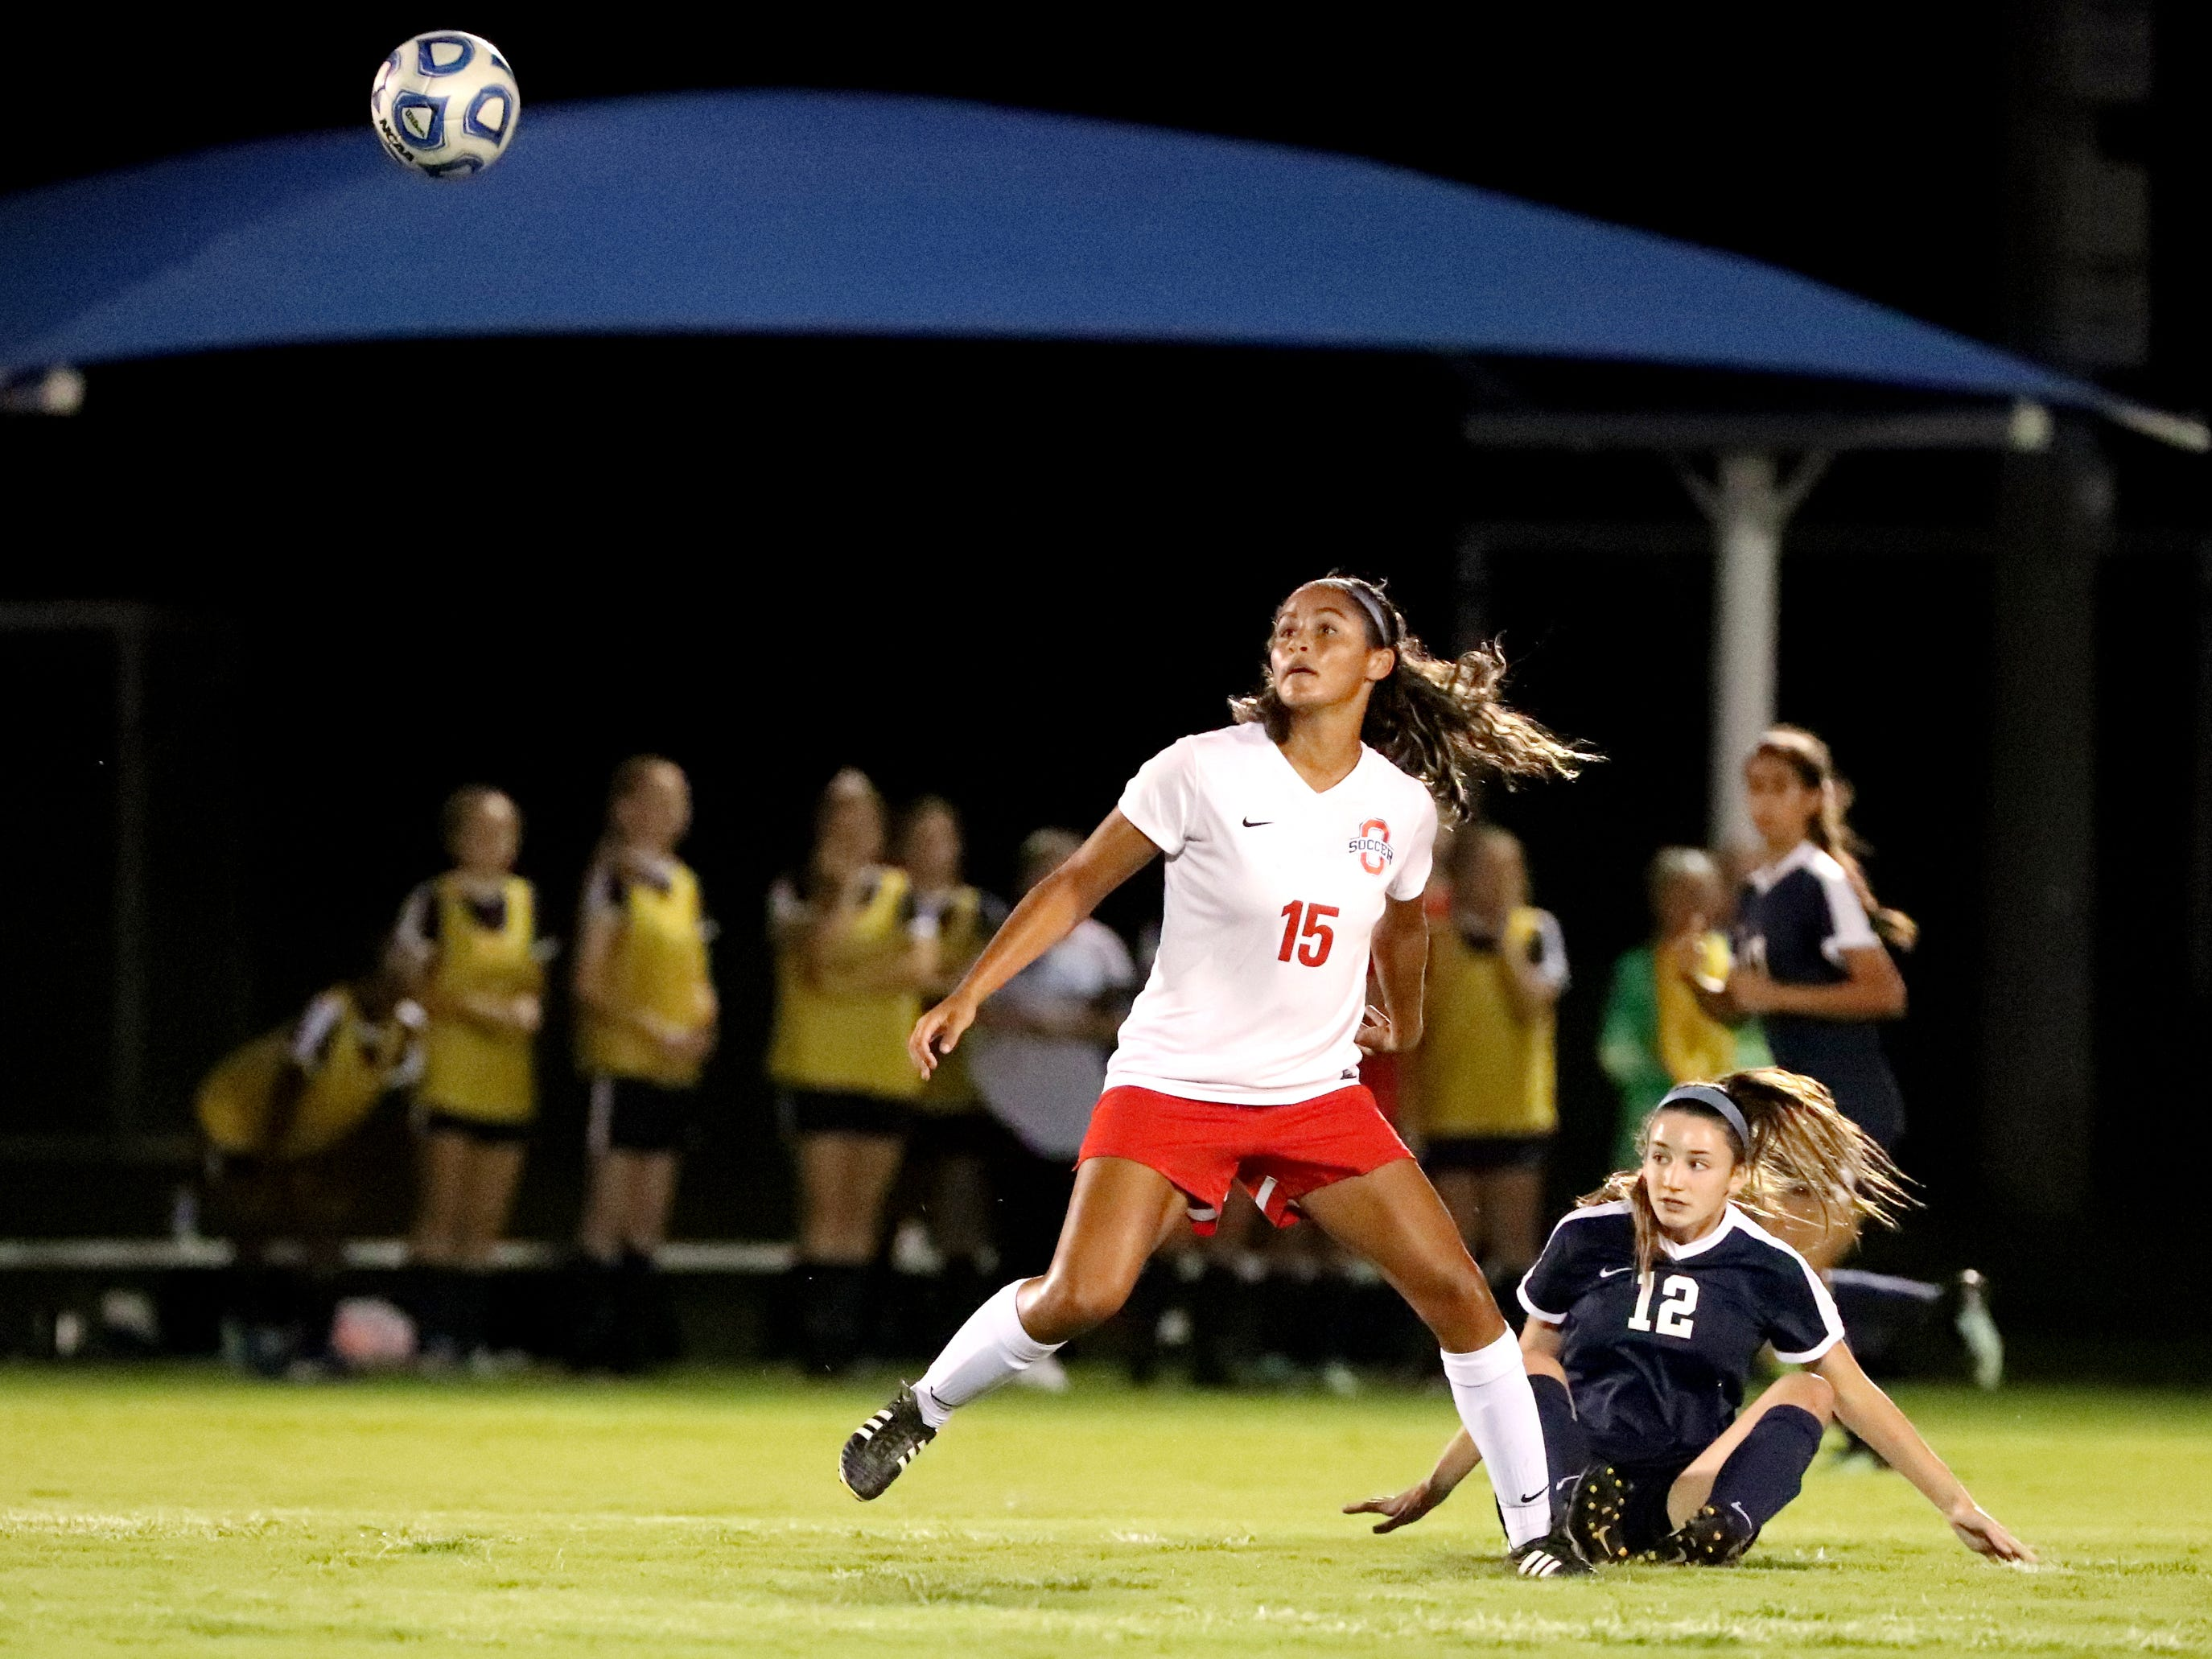 Oakland takes on Siegel in the semifinals of the 7-AAA Soccer Tournament, on Tuesday,  Oct. 09, 2018 at the Siegel Soccer Complex.